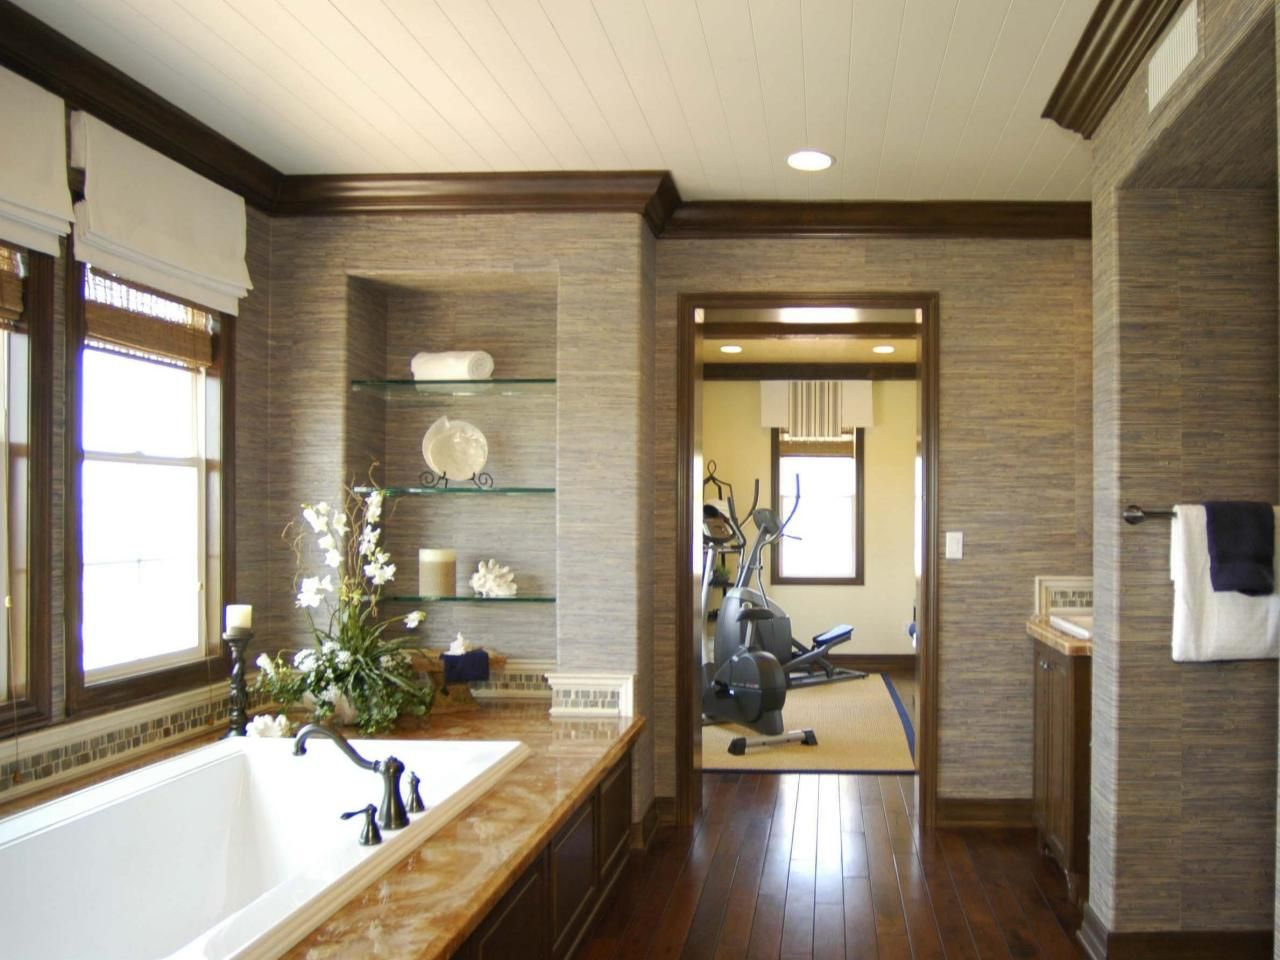 Textured wallpaper punctuated by dark wood trim gives this